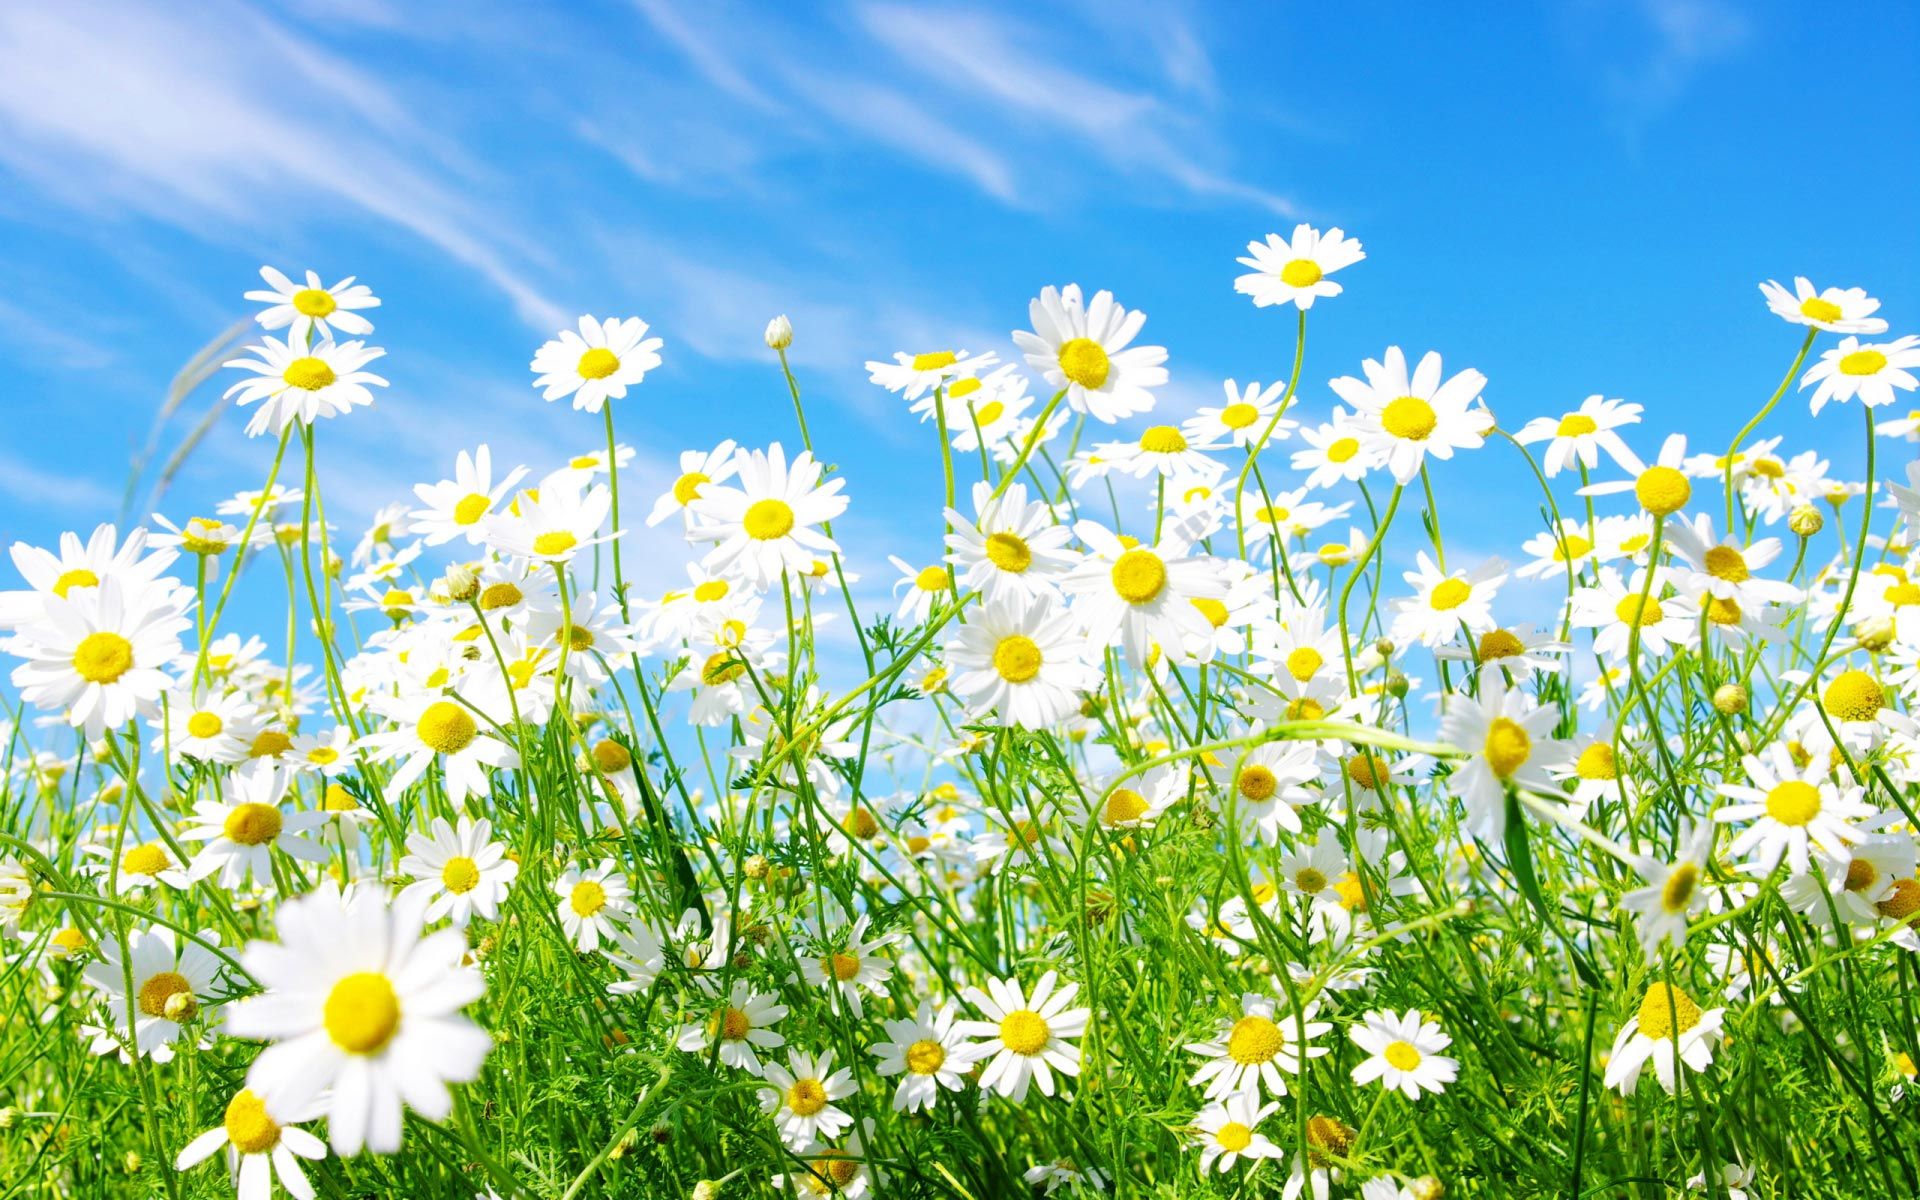 download desktop backgrounds for spring which is under the spring 1920x1200